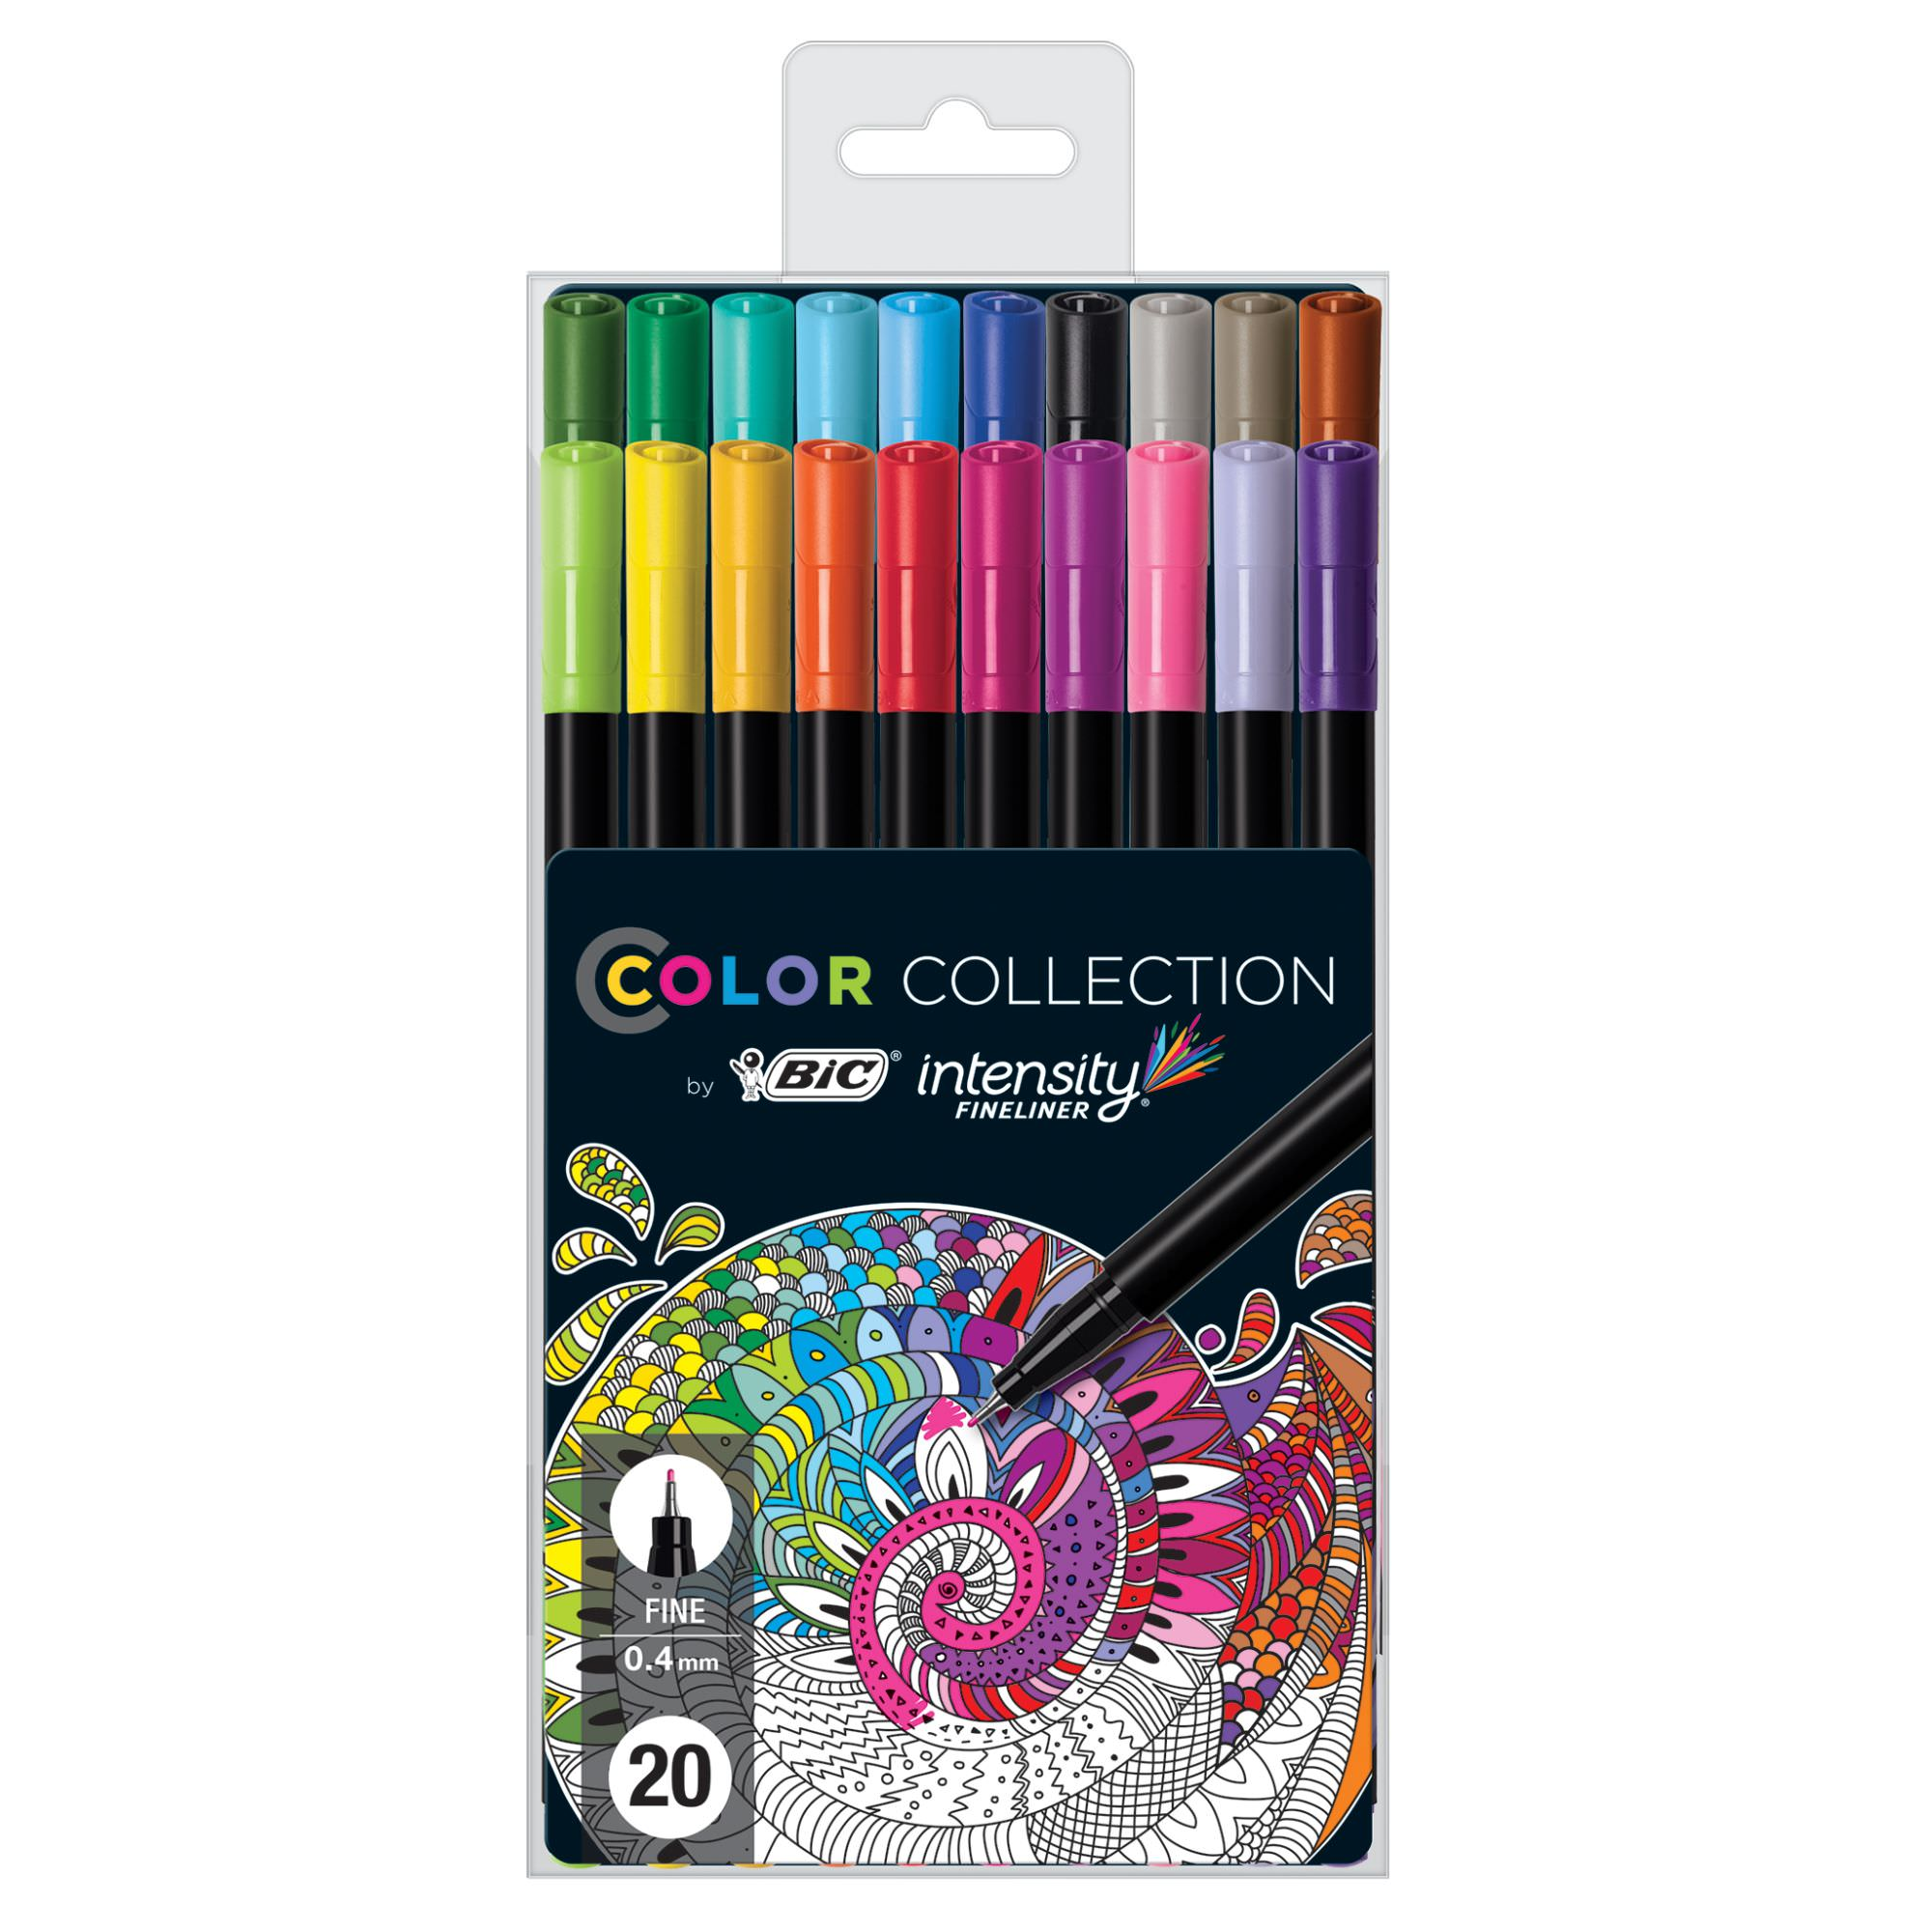 BIC Color Collection by Intensity Fineliner Pen, Assorted Colors, 20 Count